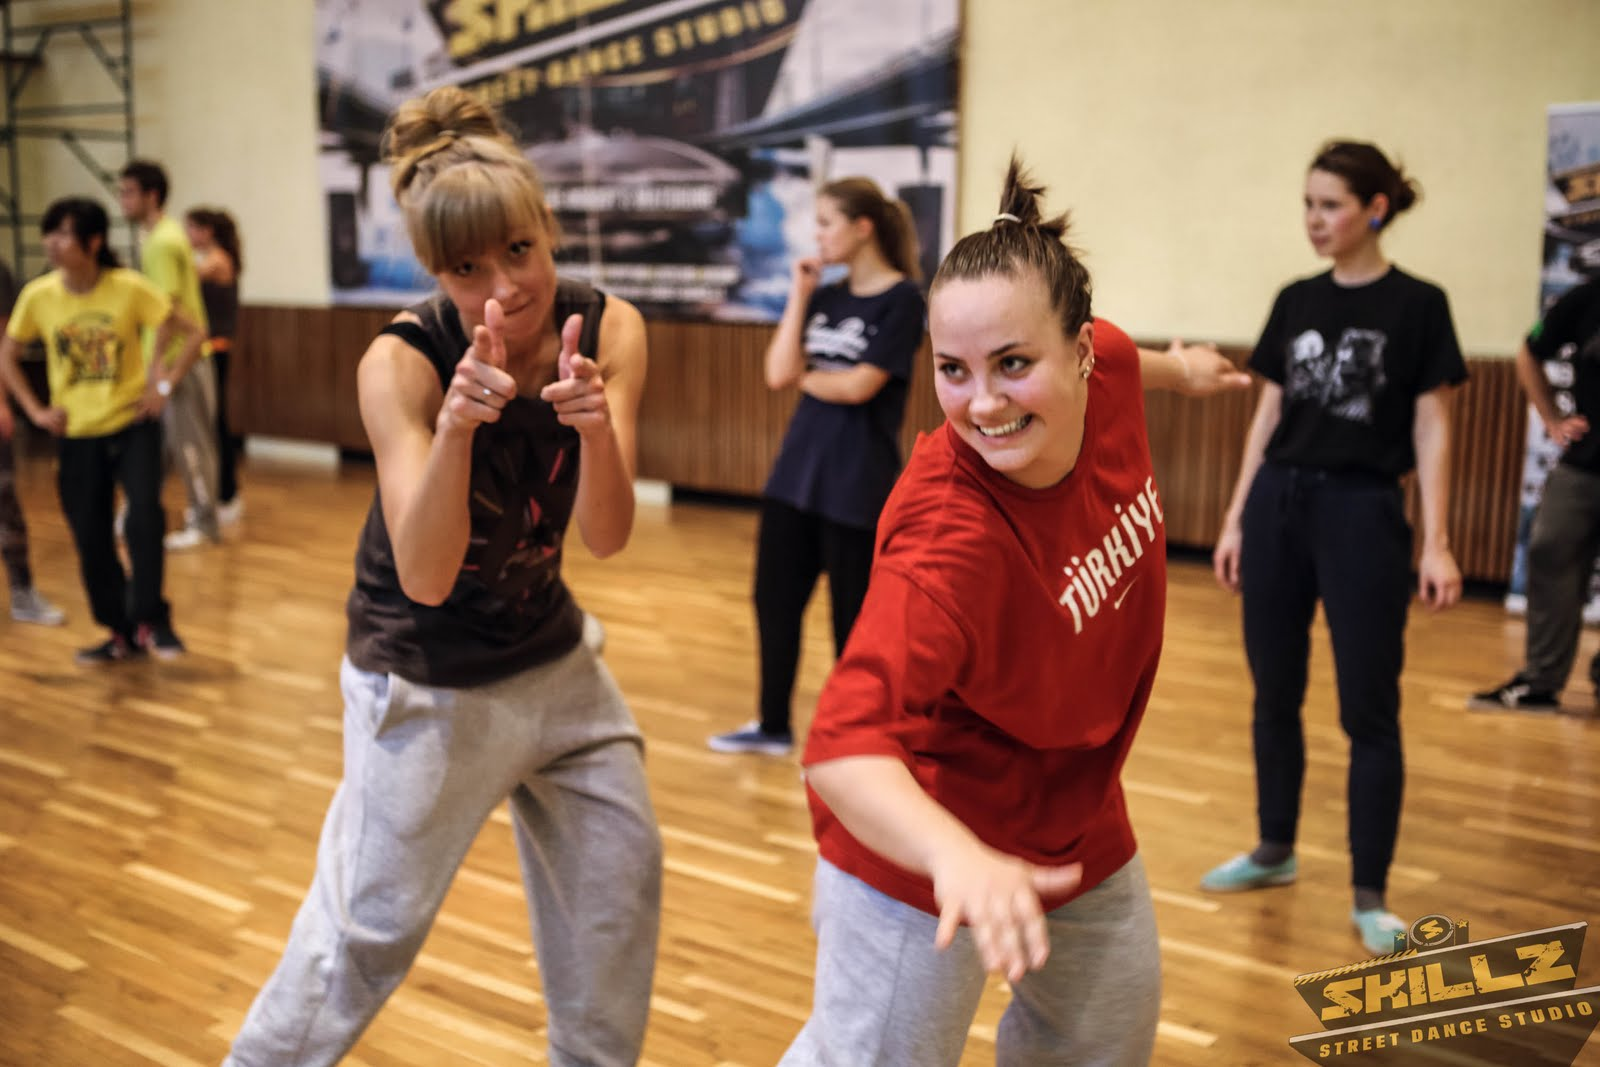 Workshop with Kusch (Russia) - IMG_4875.jpg